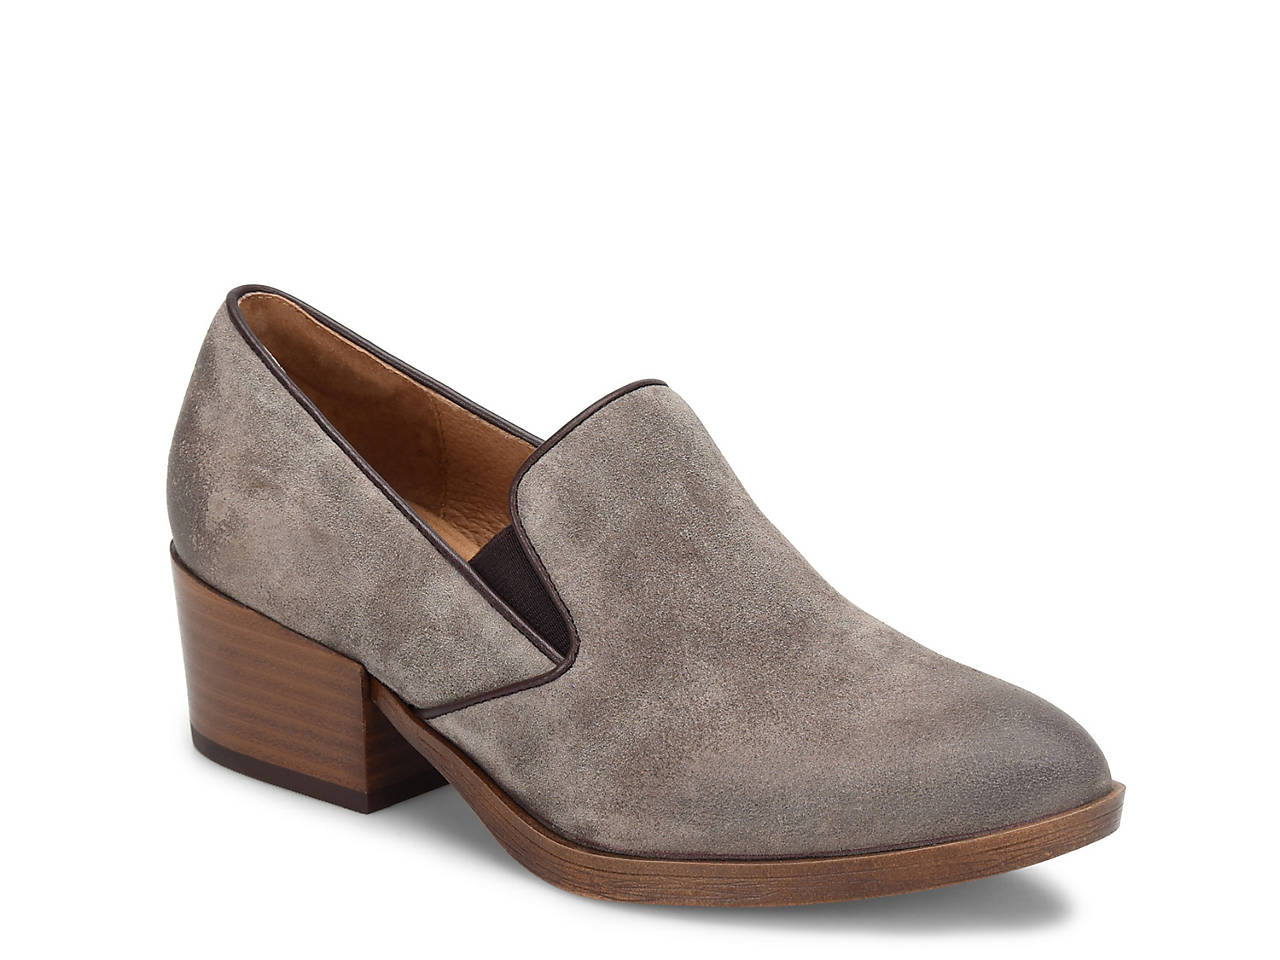 f850ed3c48 Sofft Velina Loafer Women s Shoes